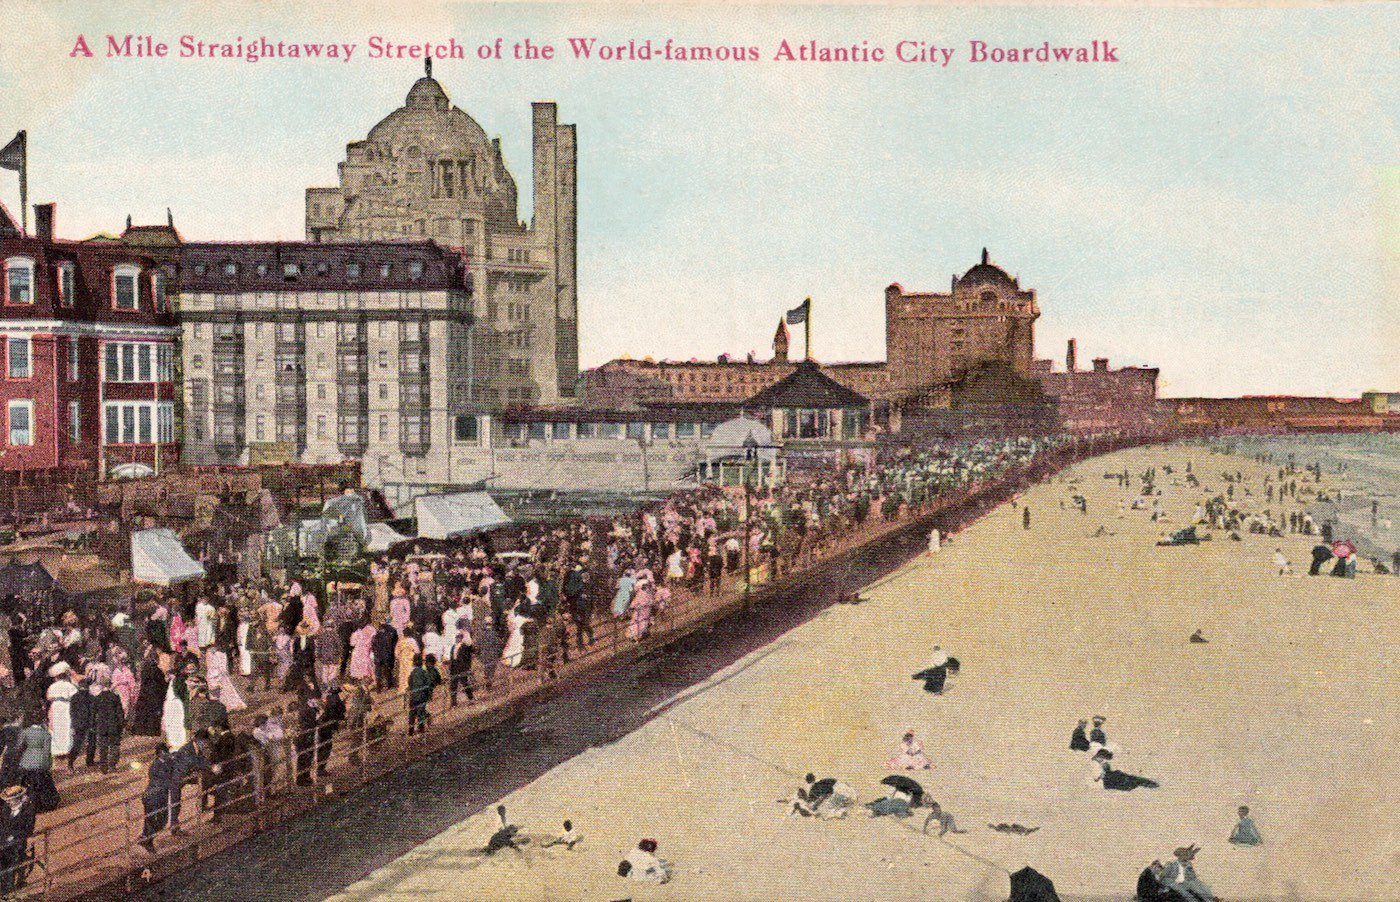 Vintage postcard for Atlantic city boardwalk